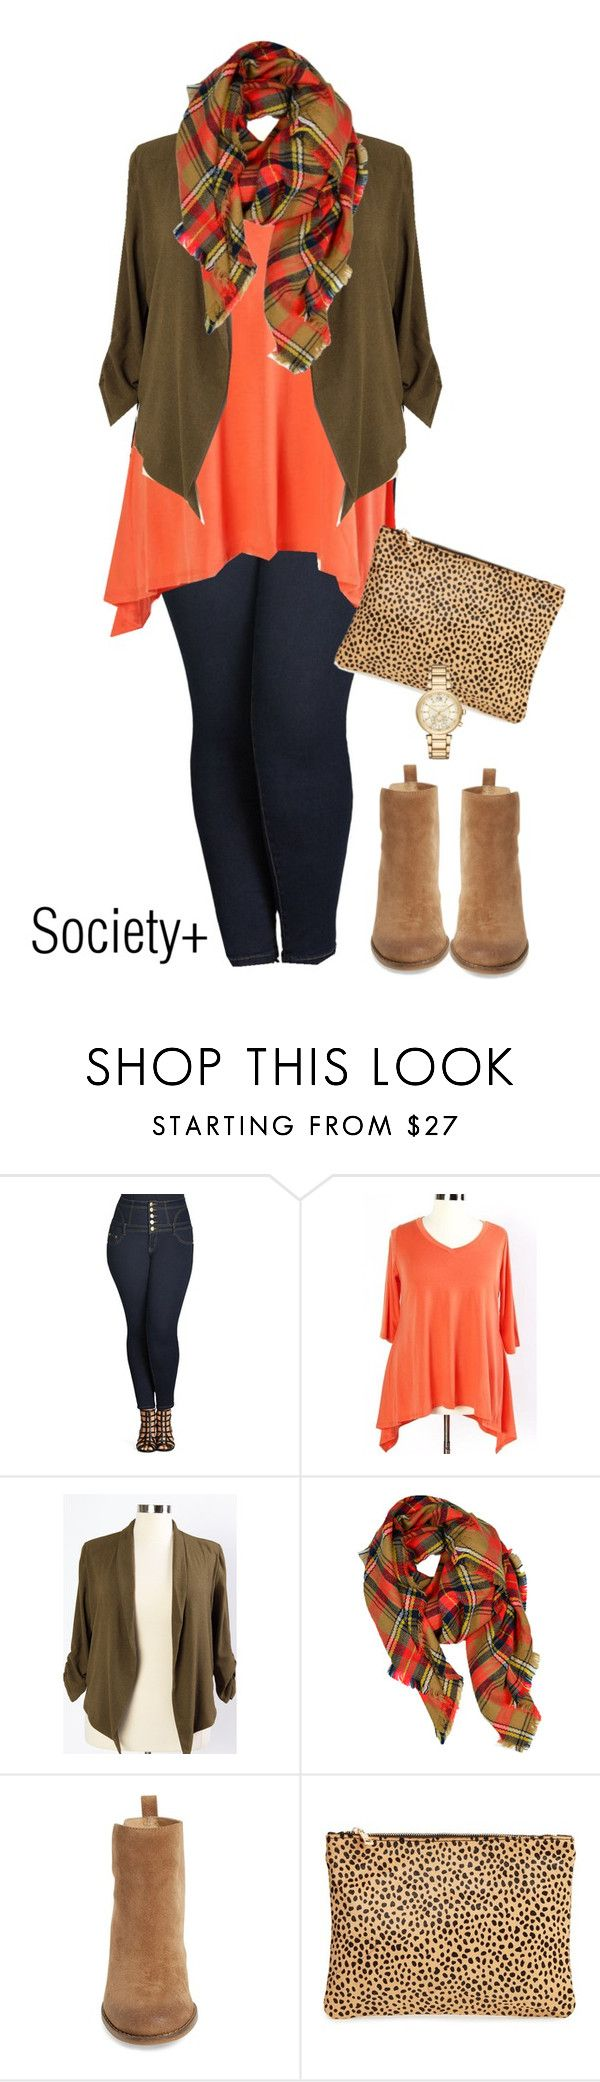 """Plus Size Orange Top - Society+"" by iamsocietyplus on Polyvore featuring City Chic, LA77, Lucky Brand, Sole Society, Michael Kors, plussize, plussizefashion, societyplus and iamsocietyplus"